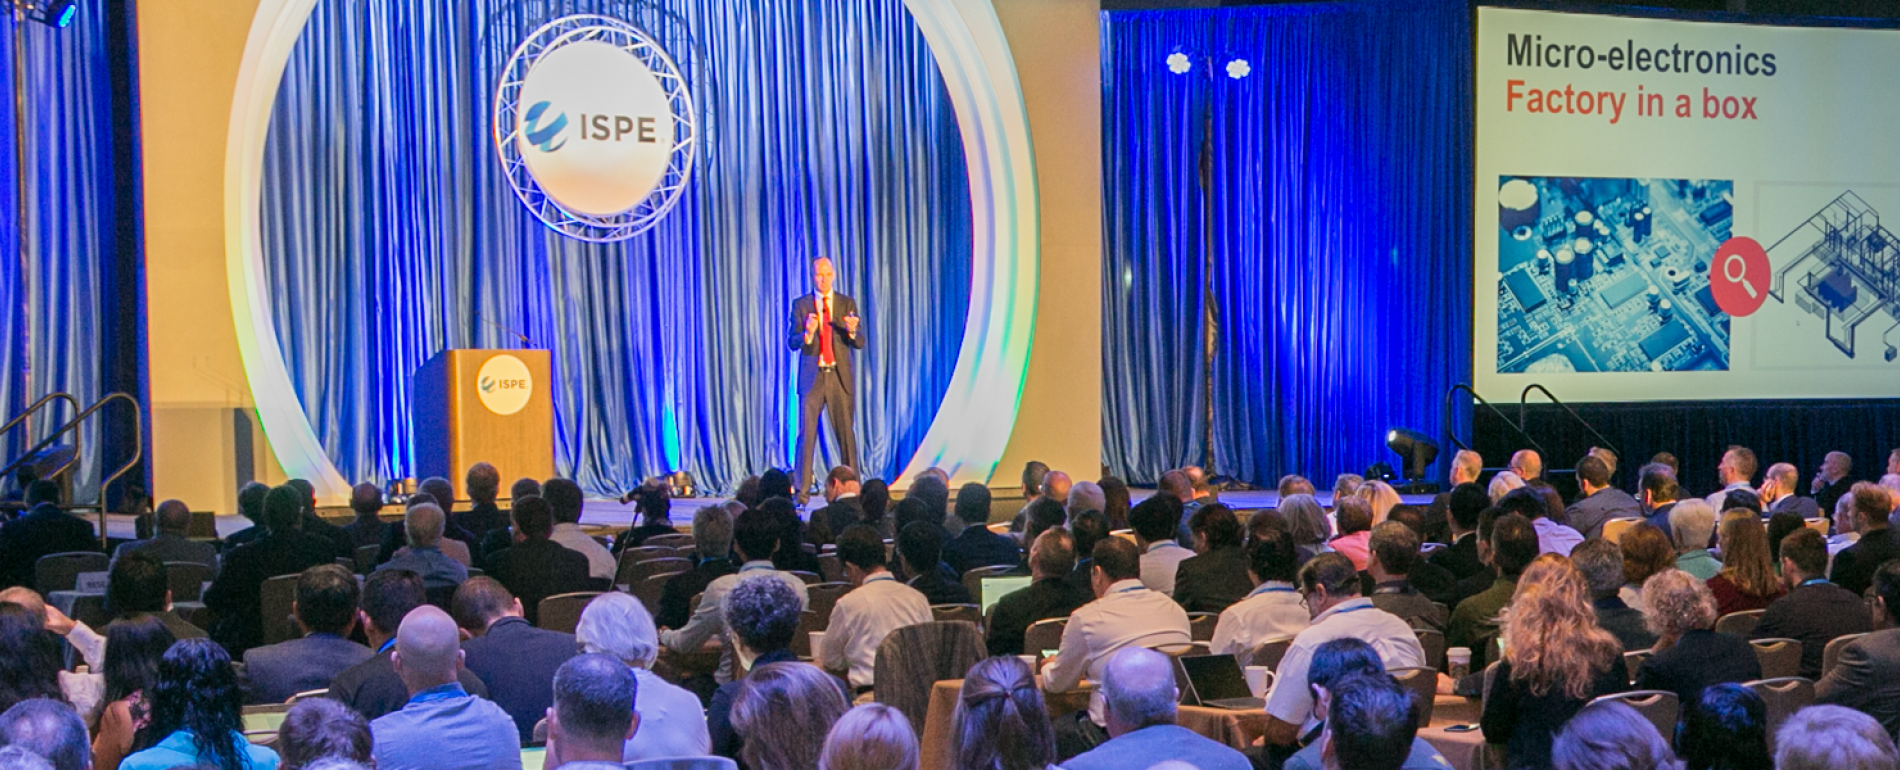 ISPE 2017 Annual Meeting Banner